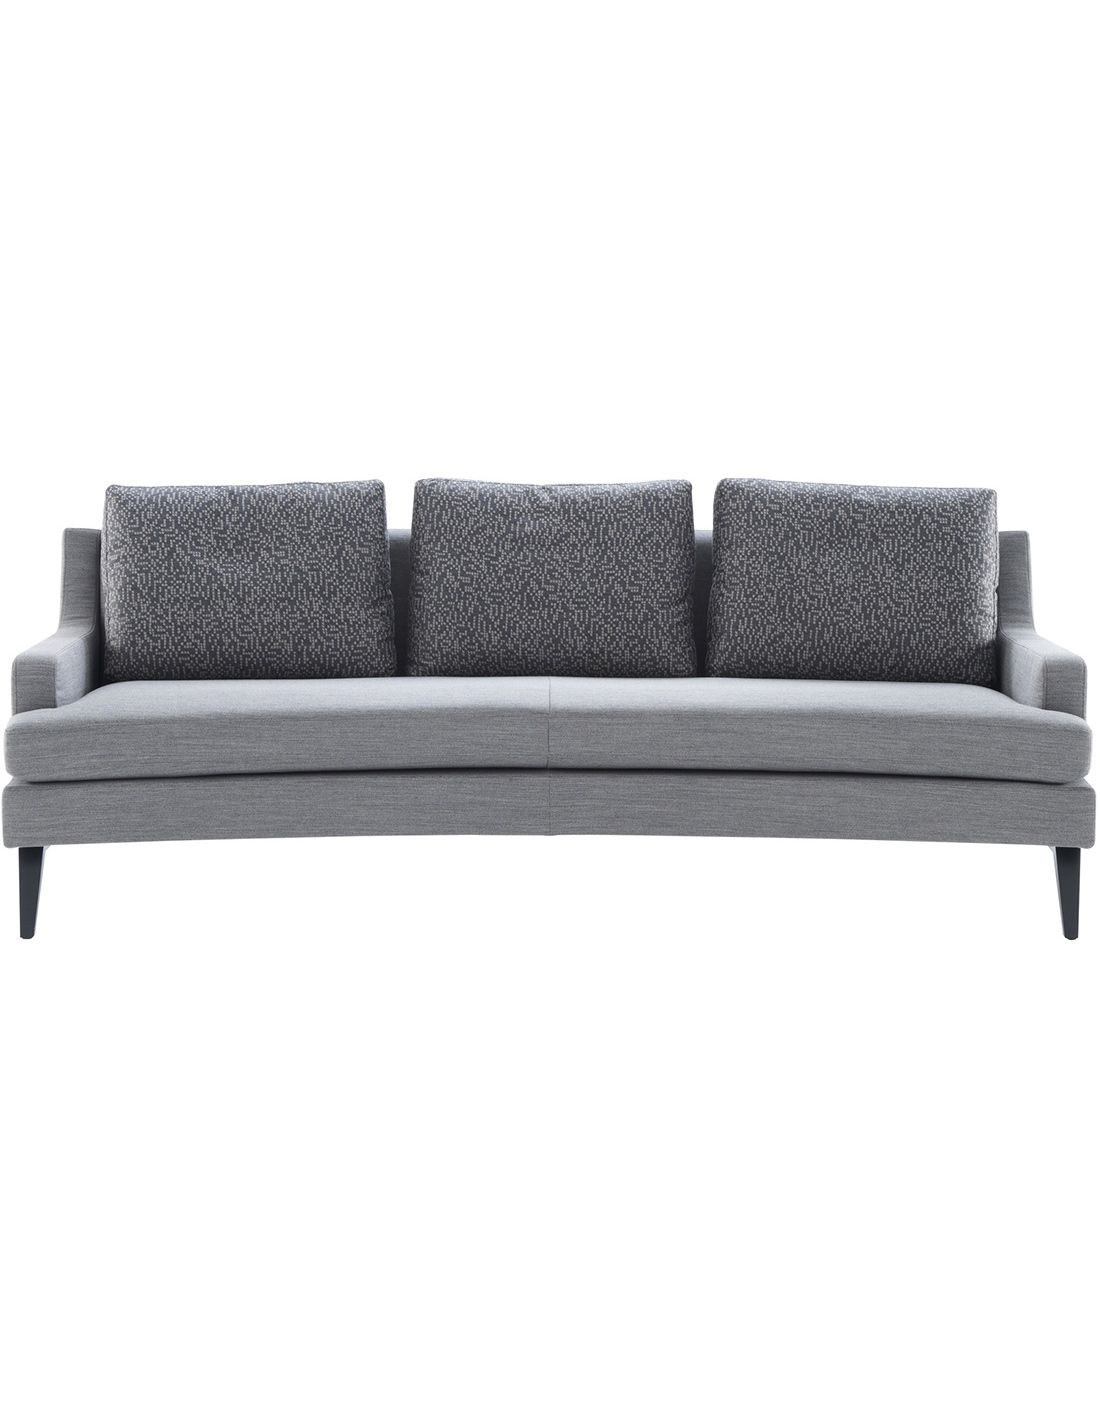 Sofa Bed Los Angeles Belem Sofa Designed By Didier Gomez For Ligne Roset Available At